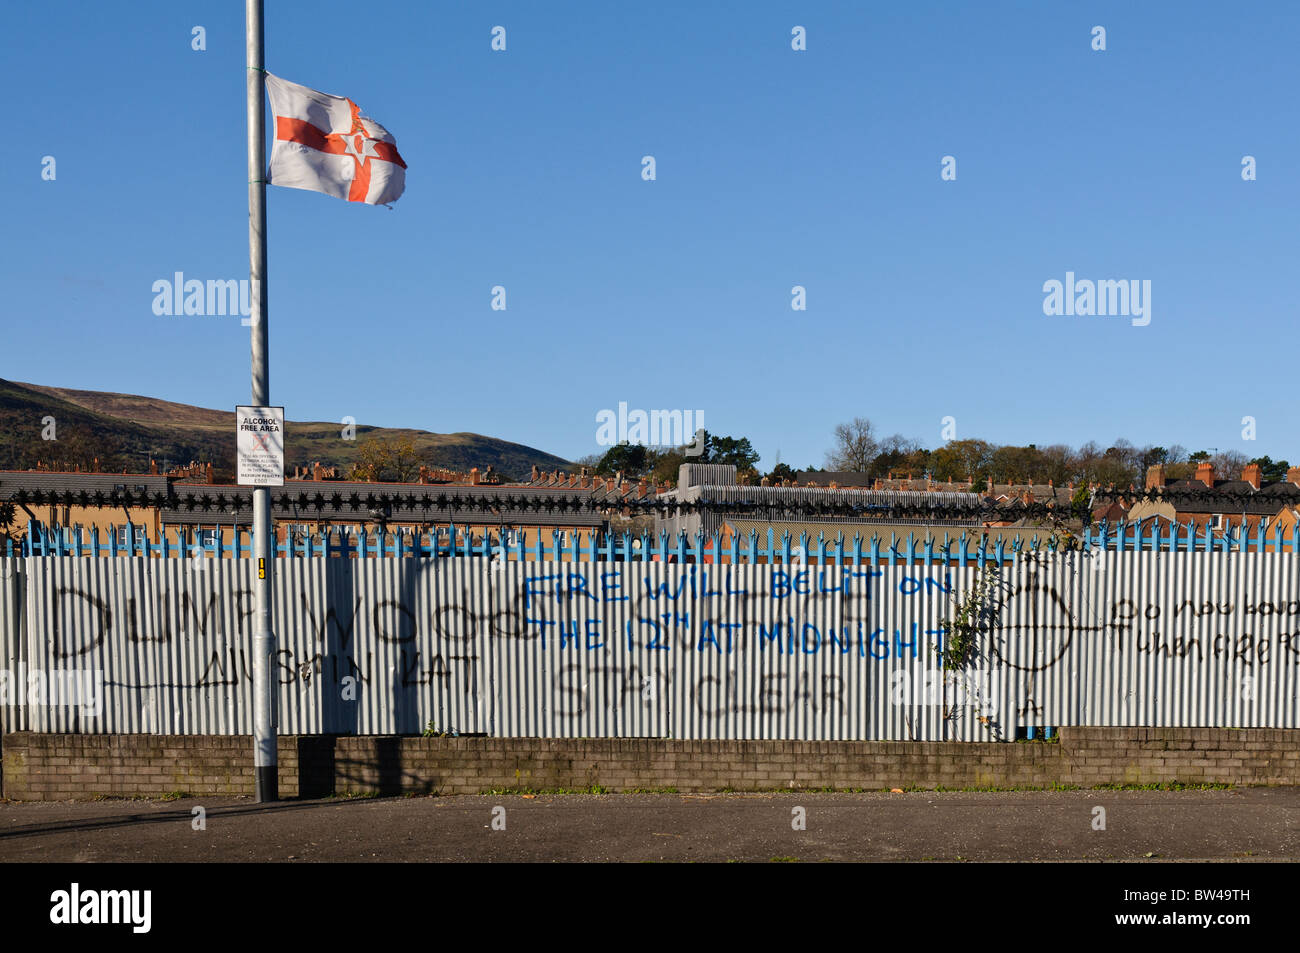 Graffiti on a fence in a loyalist area of Belfast - Stock Image